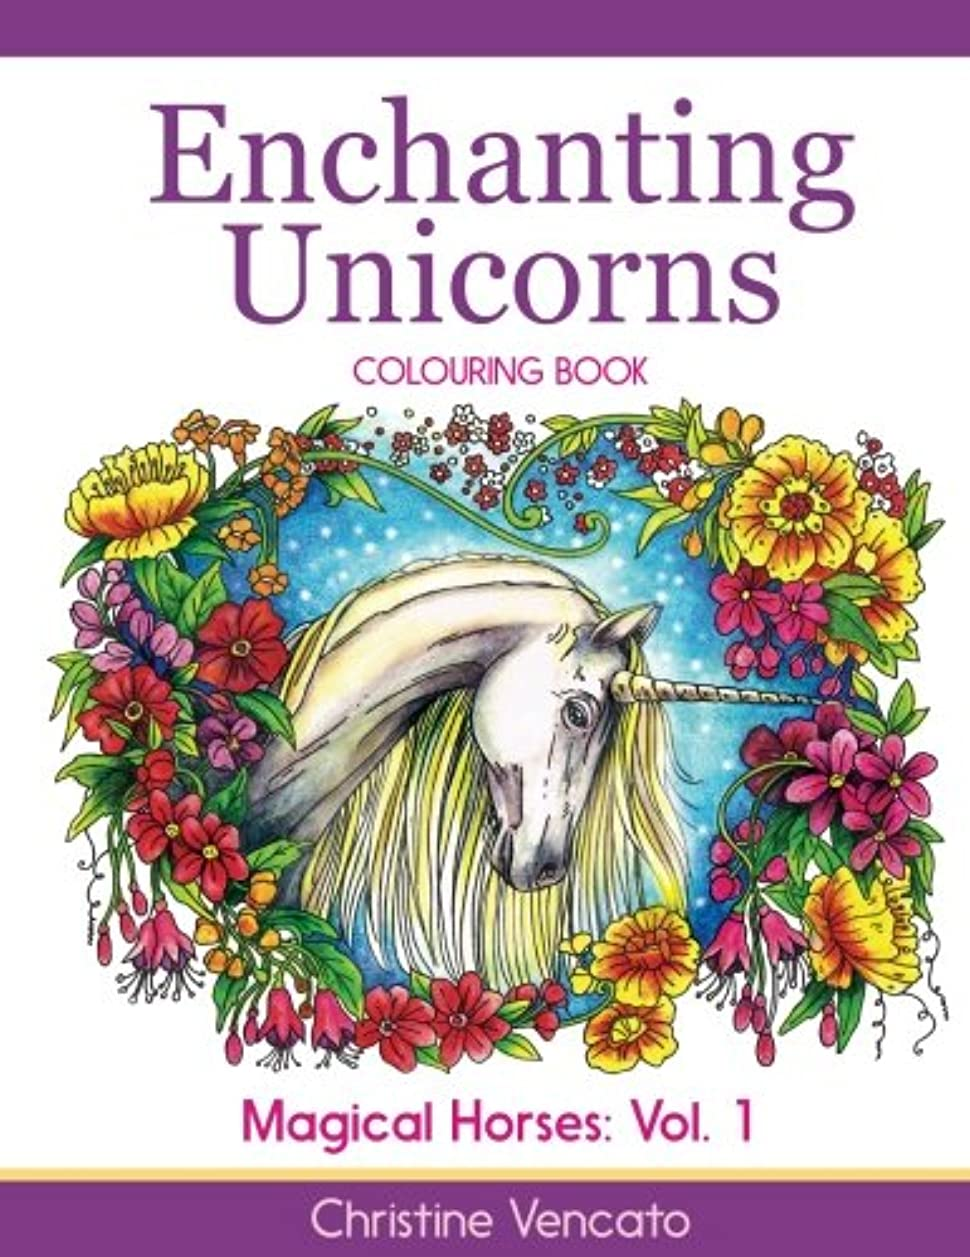 ユダヤ人病気閃光Enchanting Unicorns Colouring Book (Magical Horses)